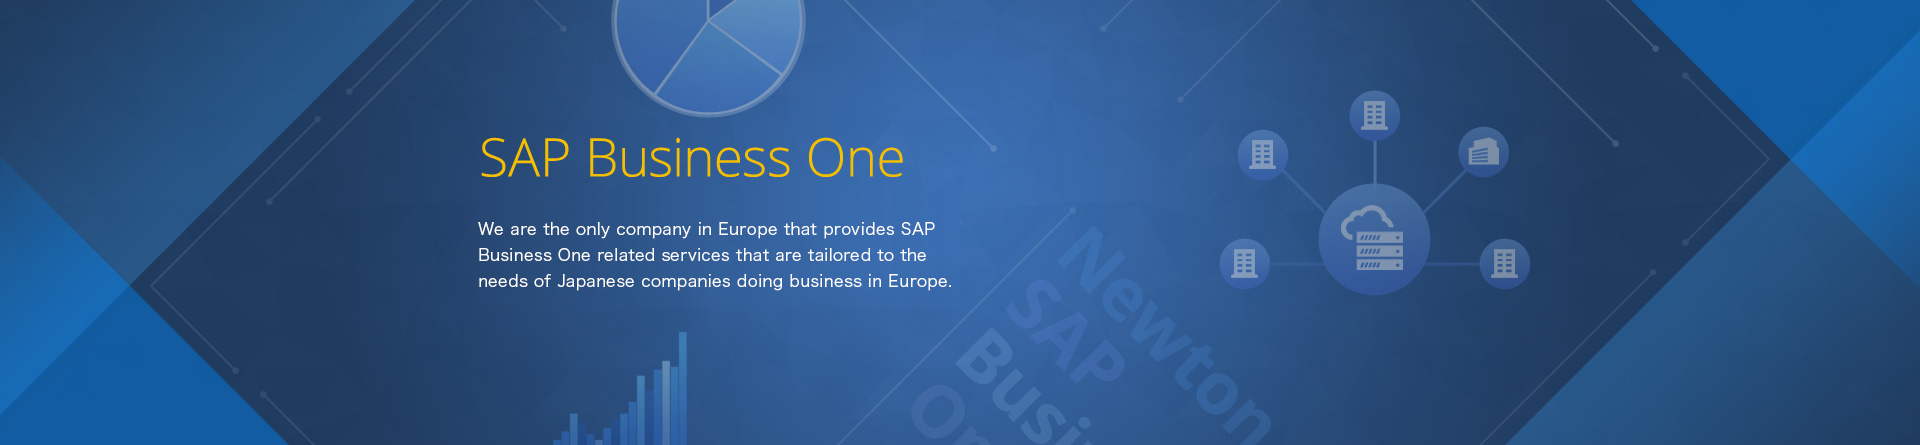 /solutions/sap_business_one/